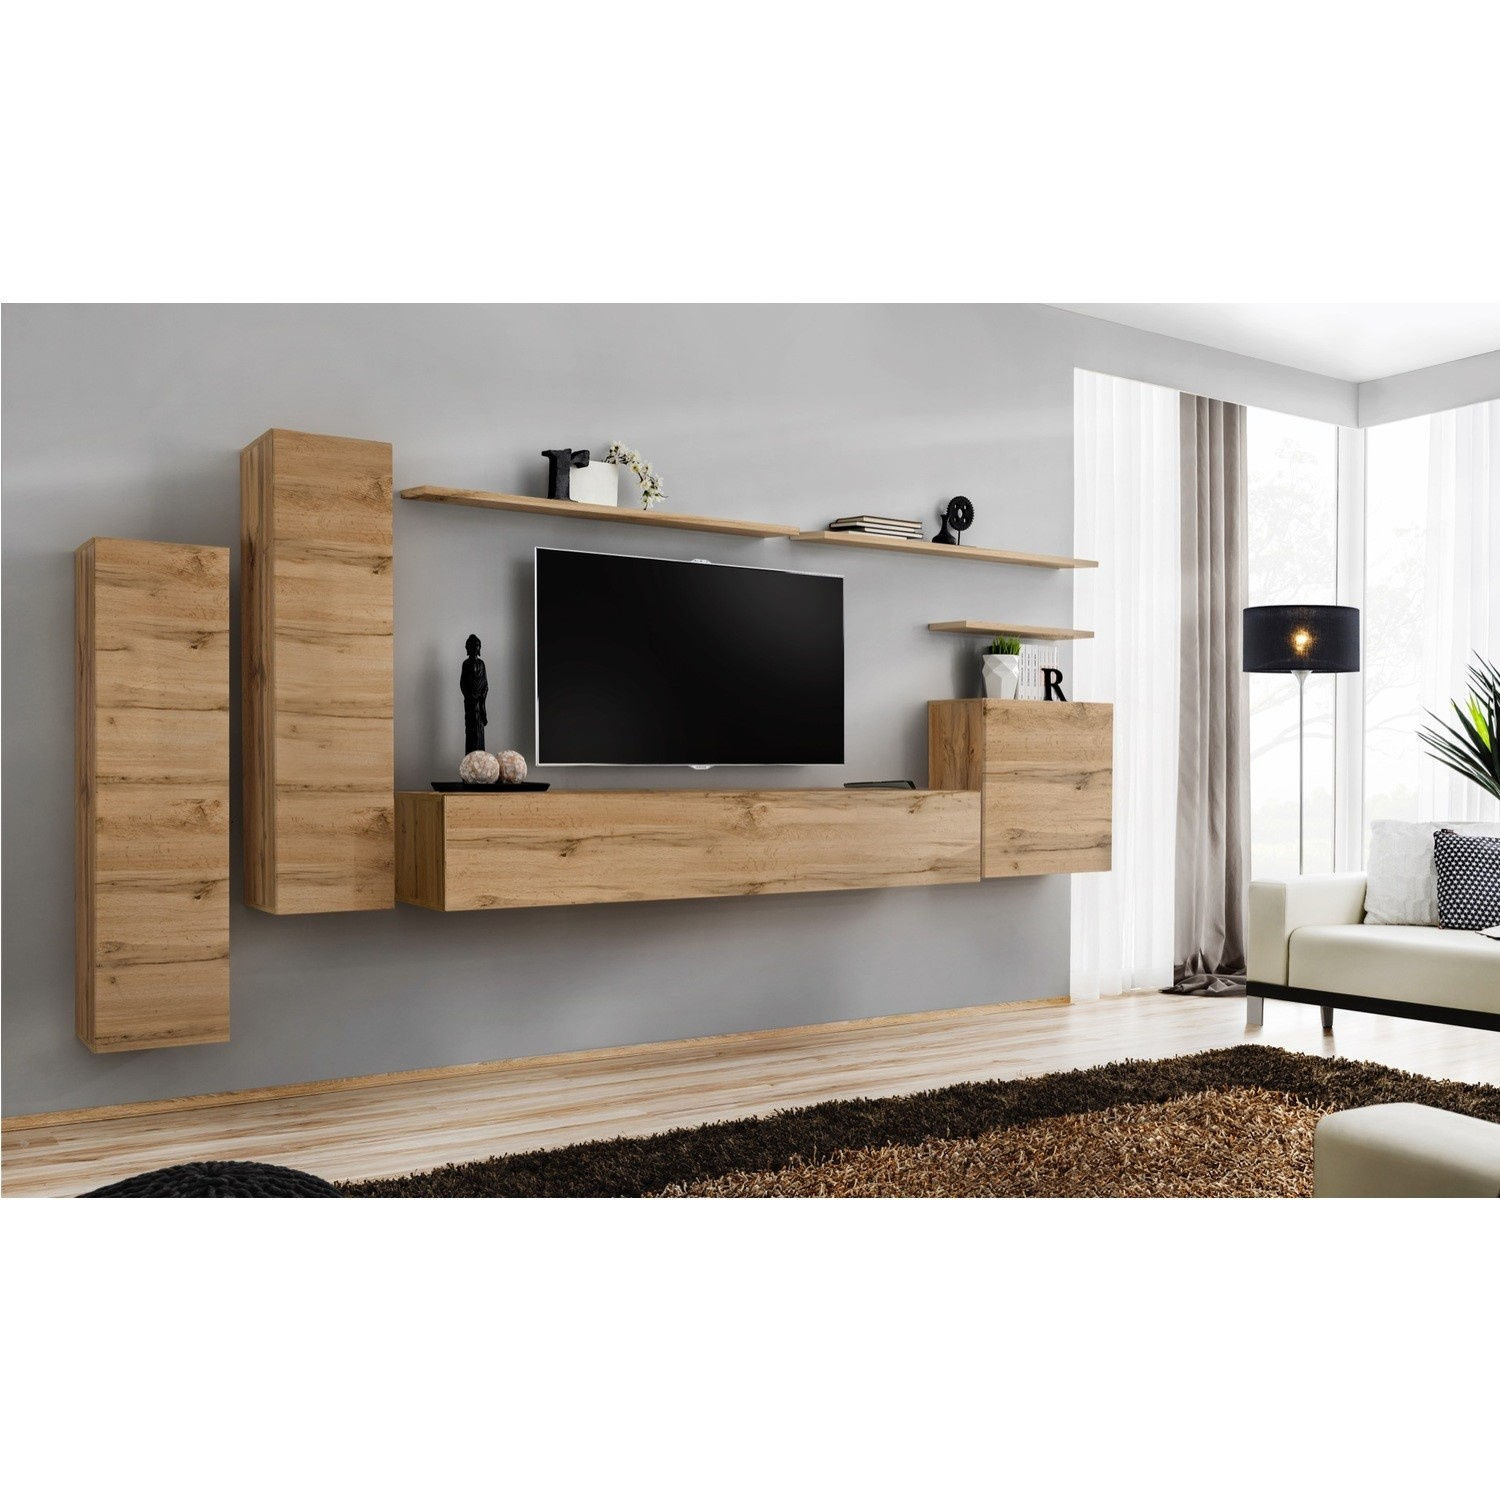 Wooden Floating Entertainment TV Unit with Storage  TV's up to 50  Neo